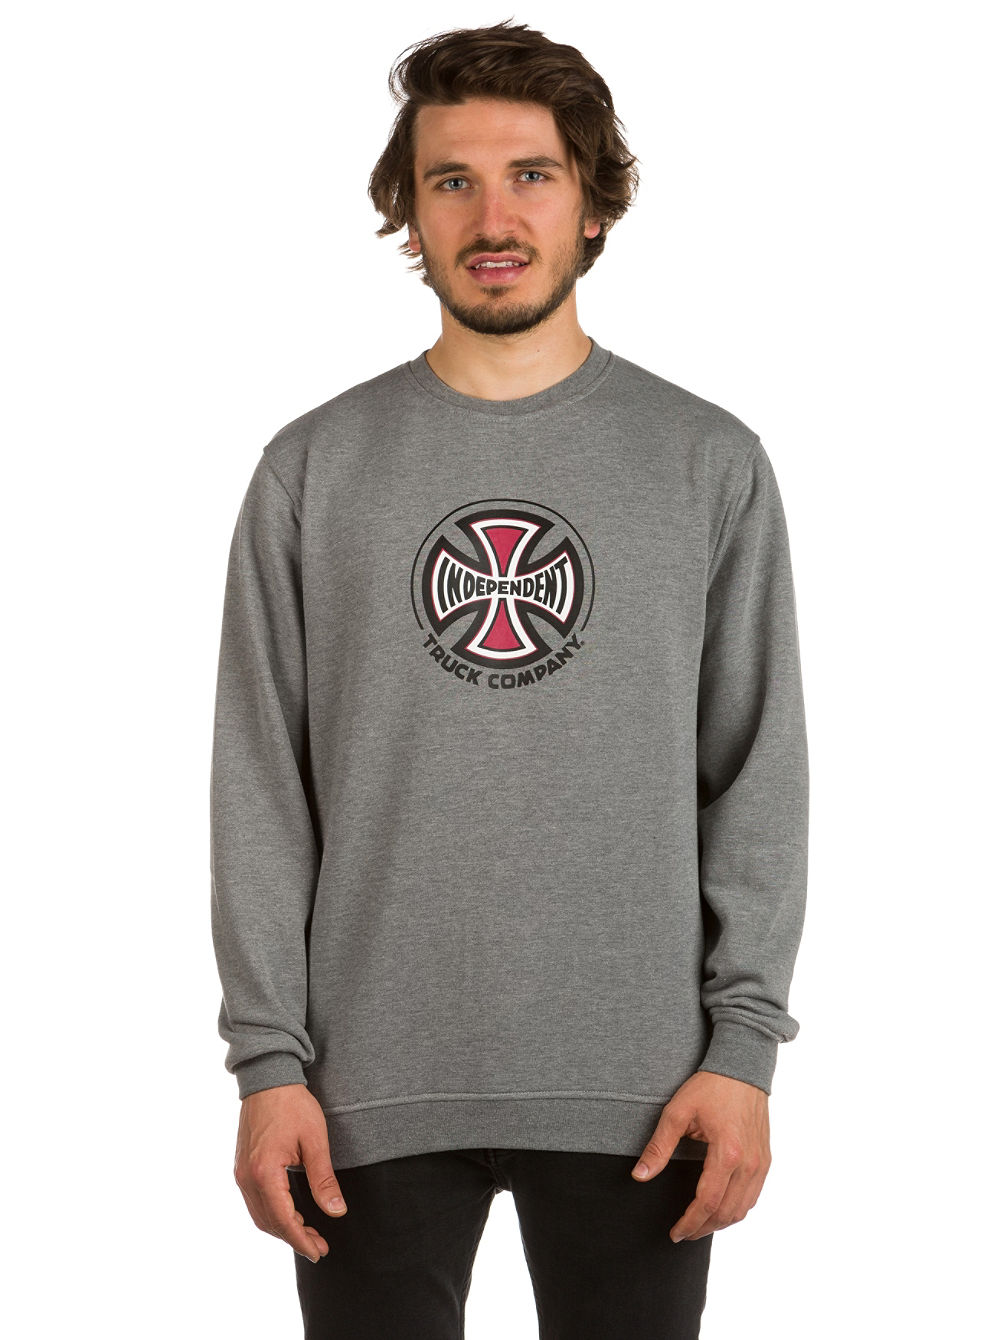 Truck Co Crew Sweater